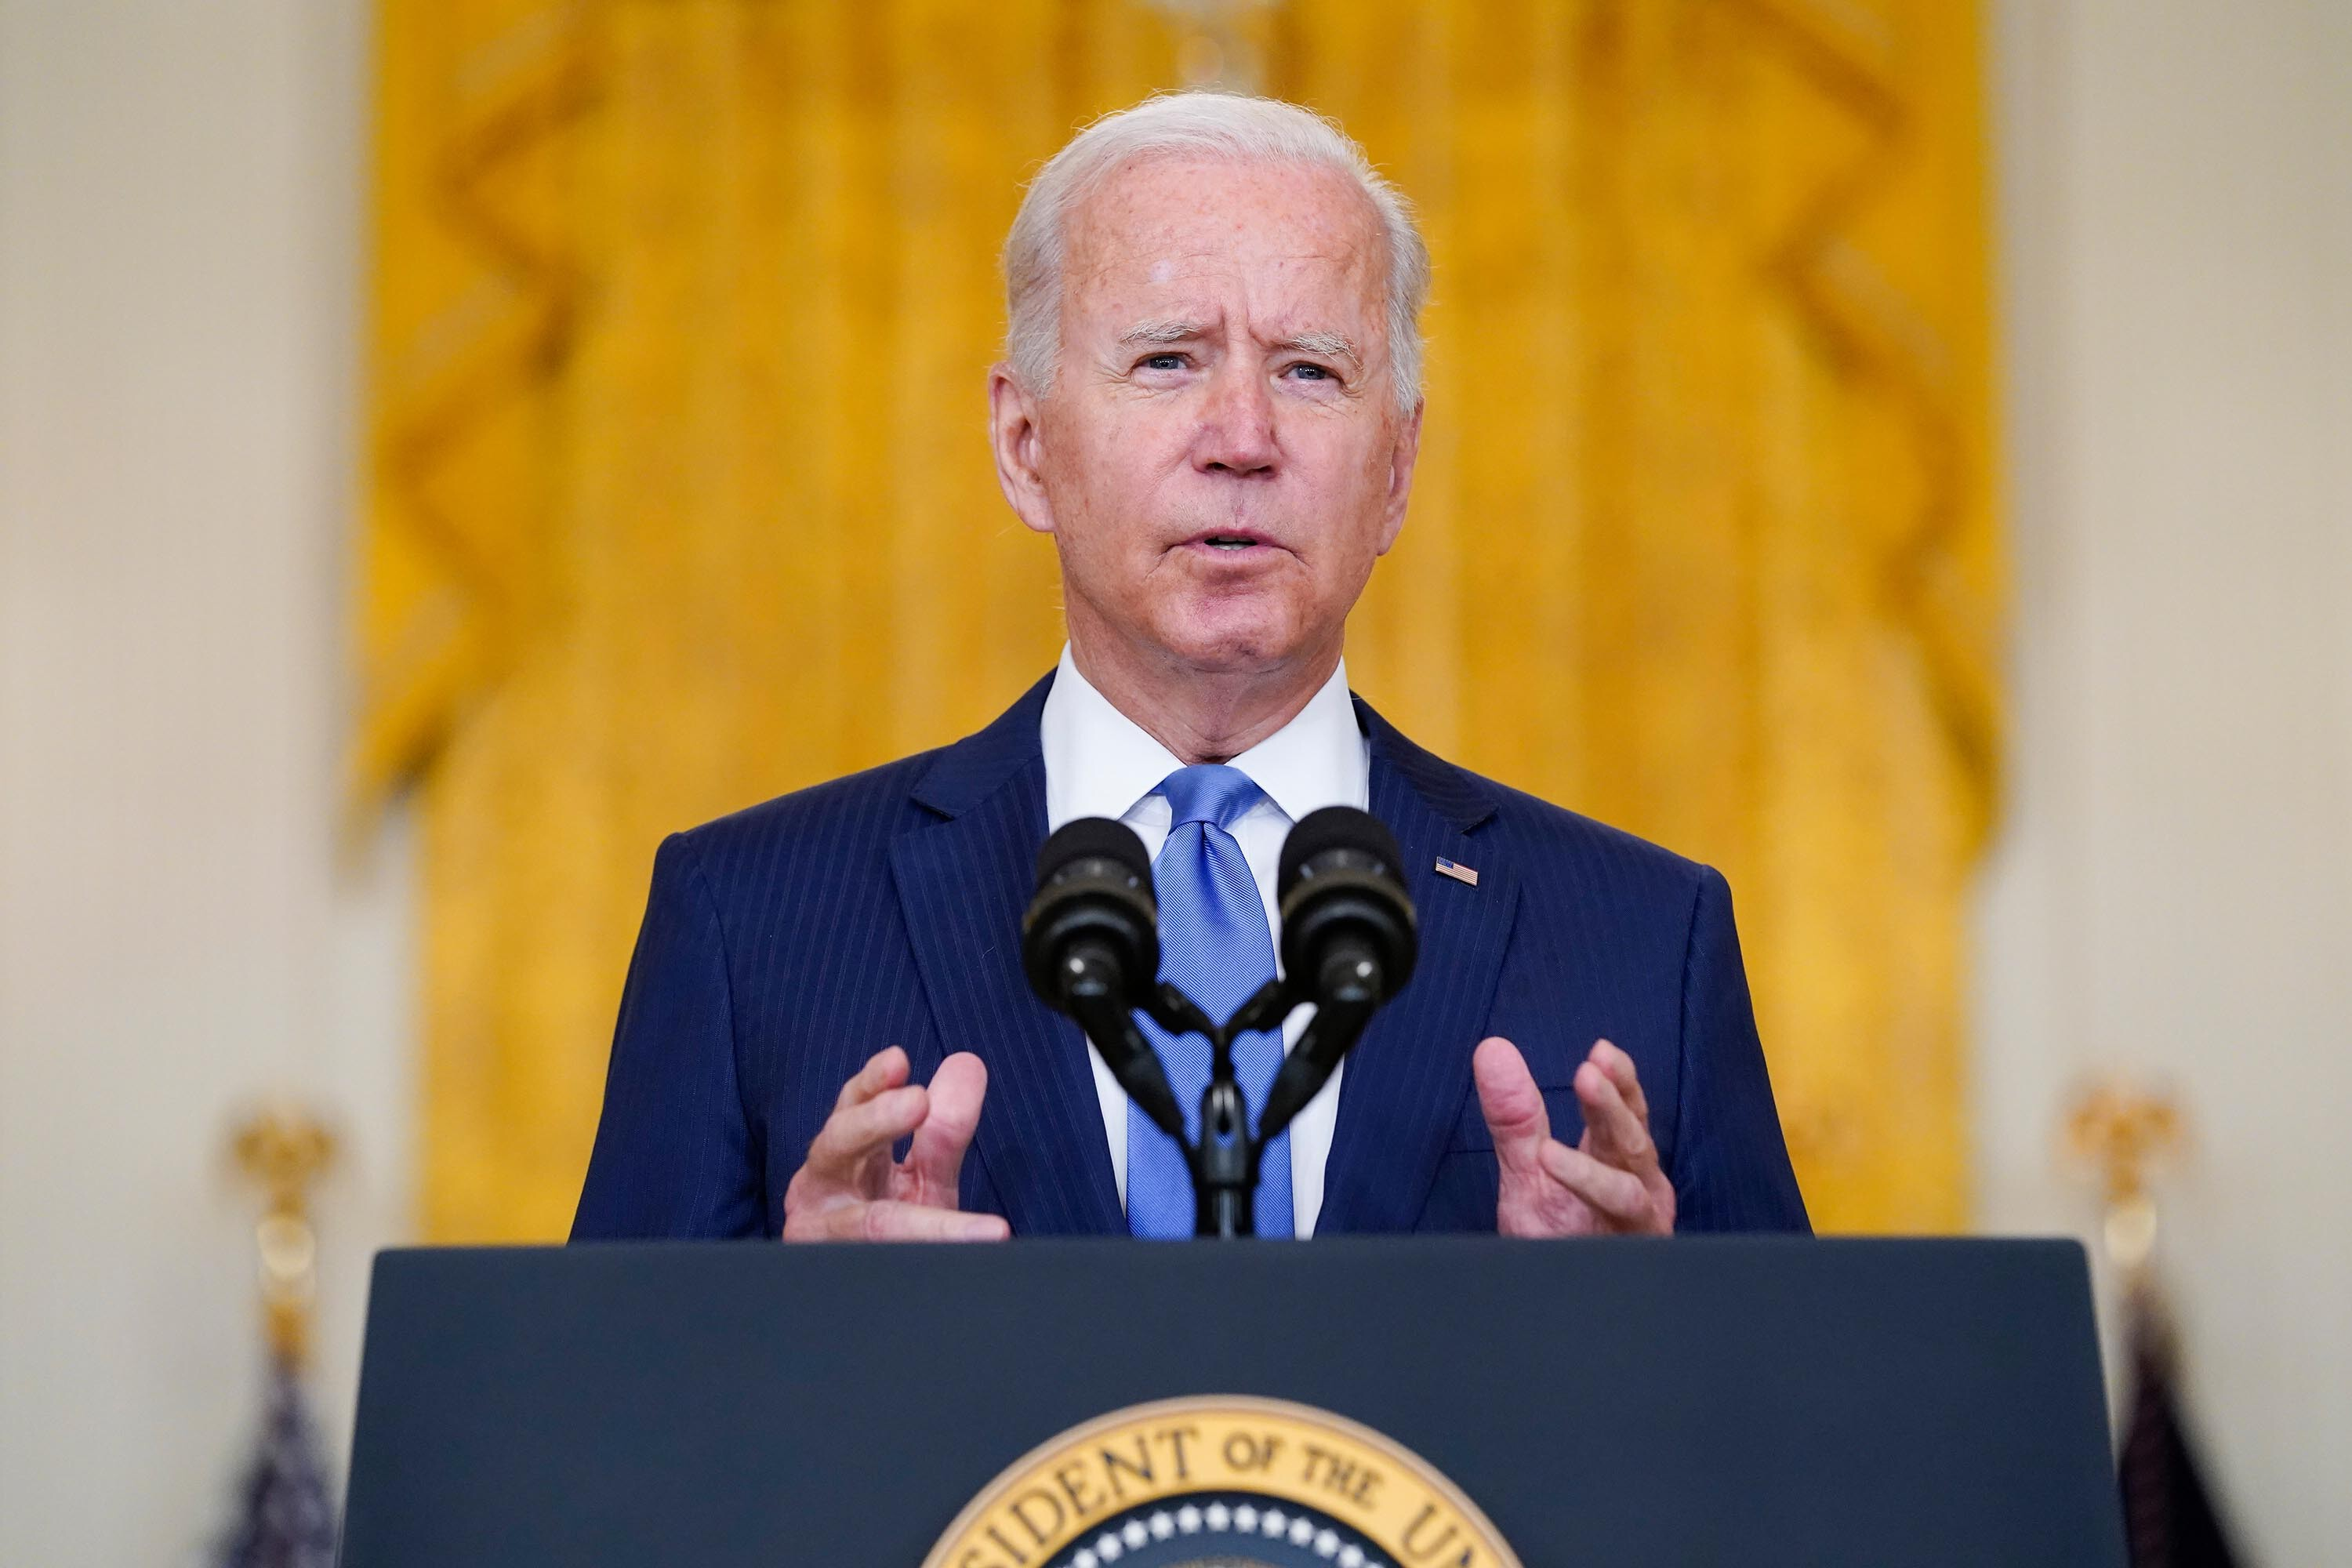 White House touts 'productive' meetings with Democratic leaders, moderates and progressives at critical moment for Biden's agenda